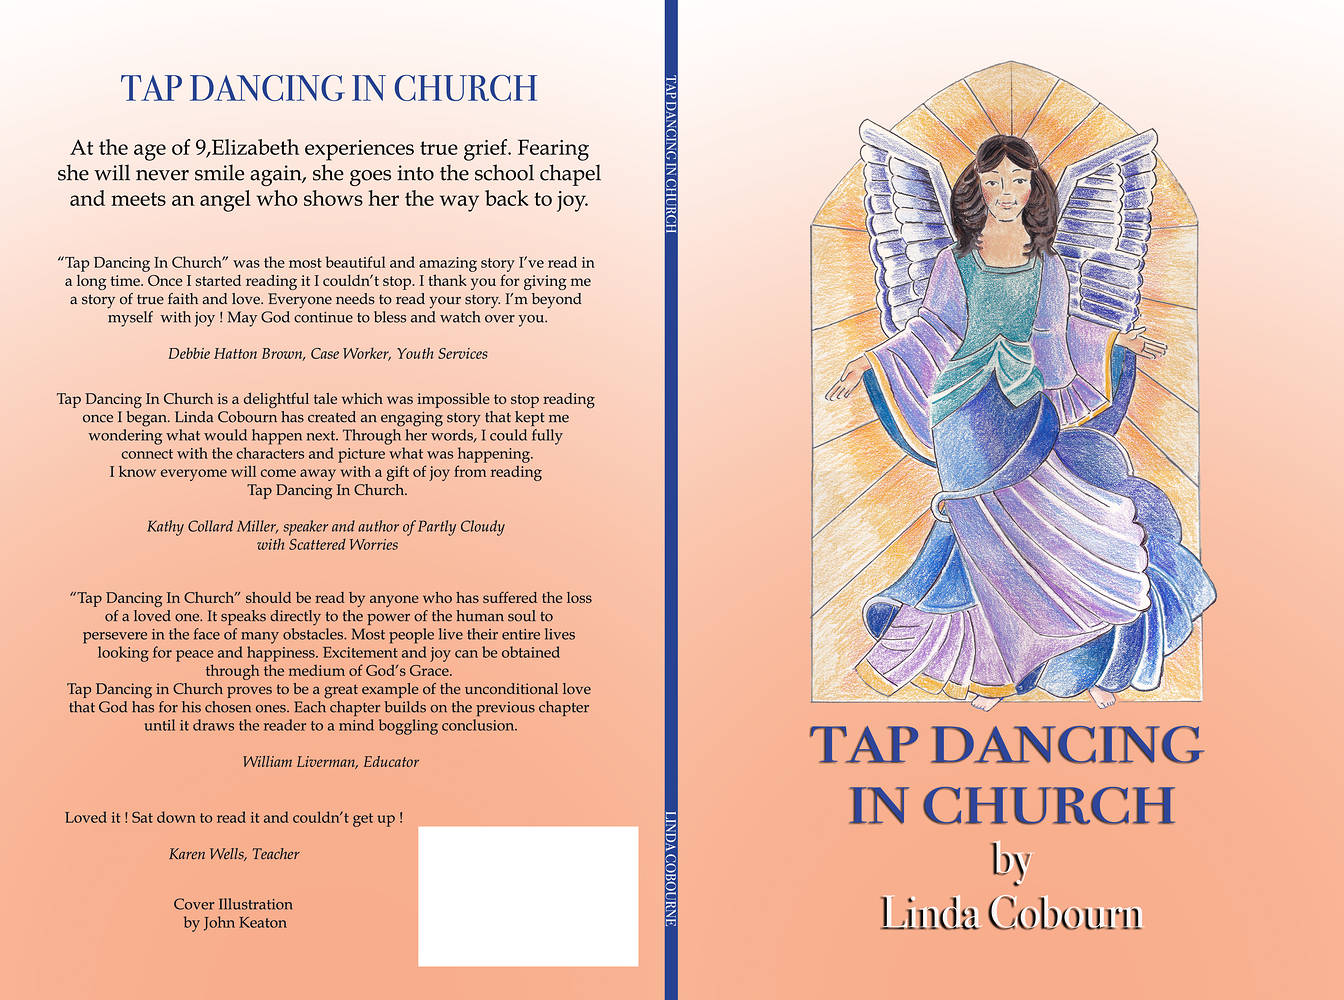 Tap Dancing in Church Book Cover by John Keaton